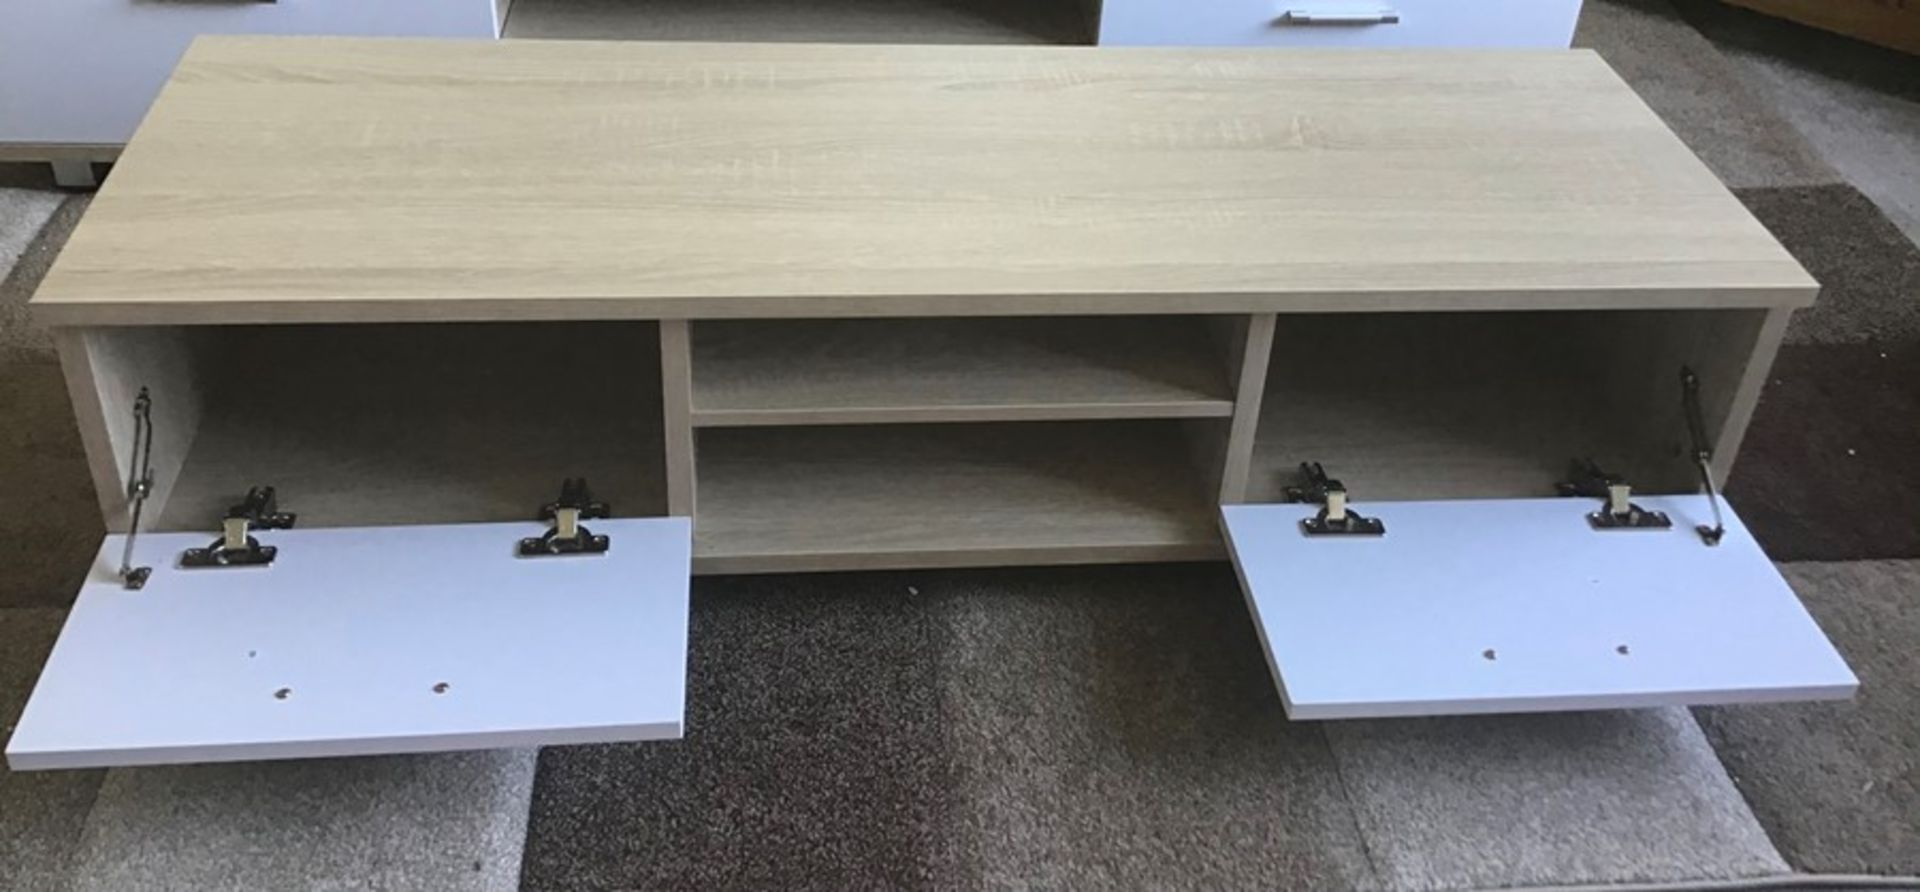 Oak and white 168cm TV stand, brand new, flat packed and boxed. RRP Circa £100.00 | 3x Boxes - Image 2 of 3